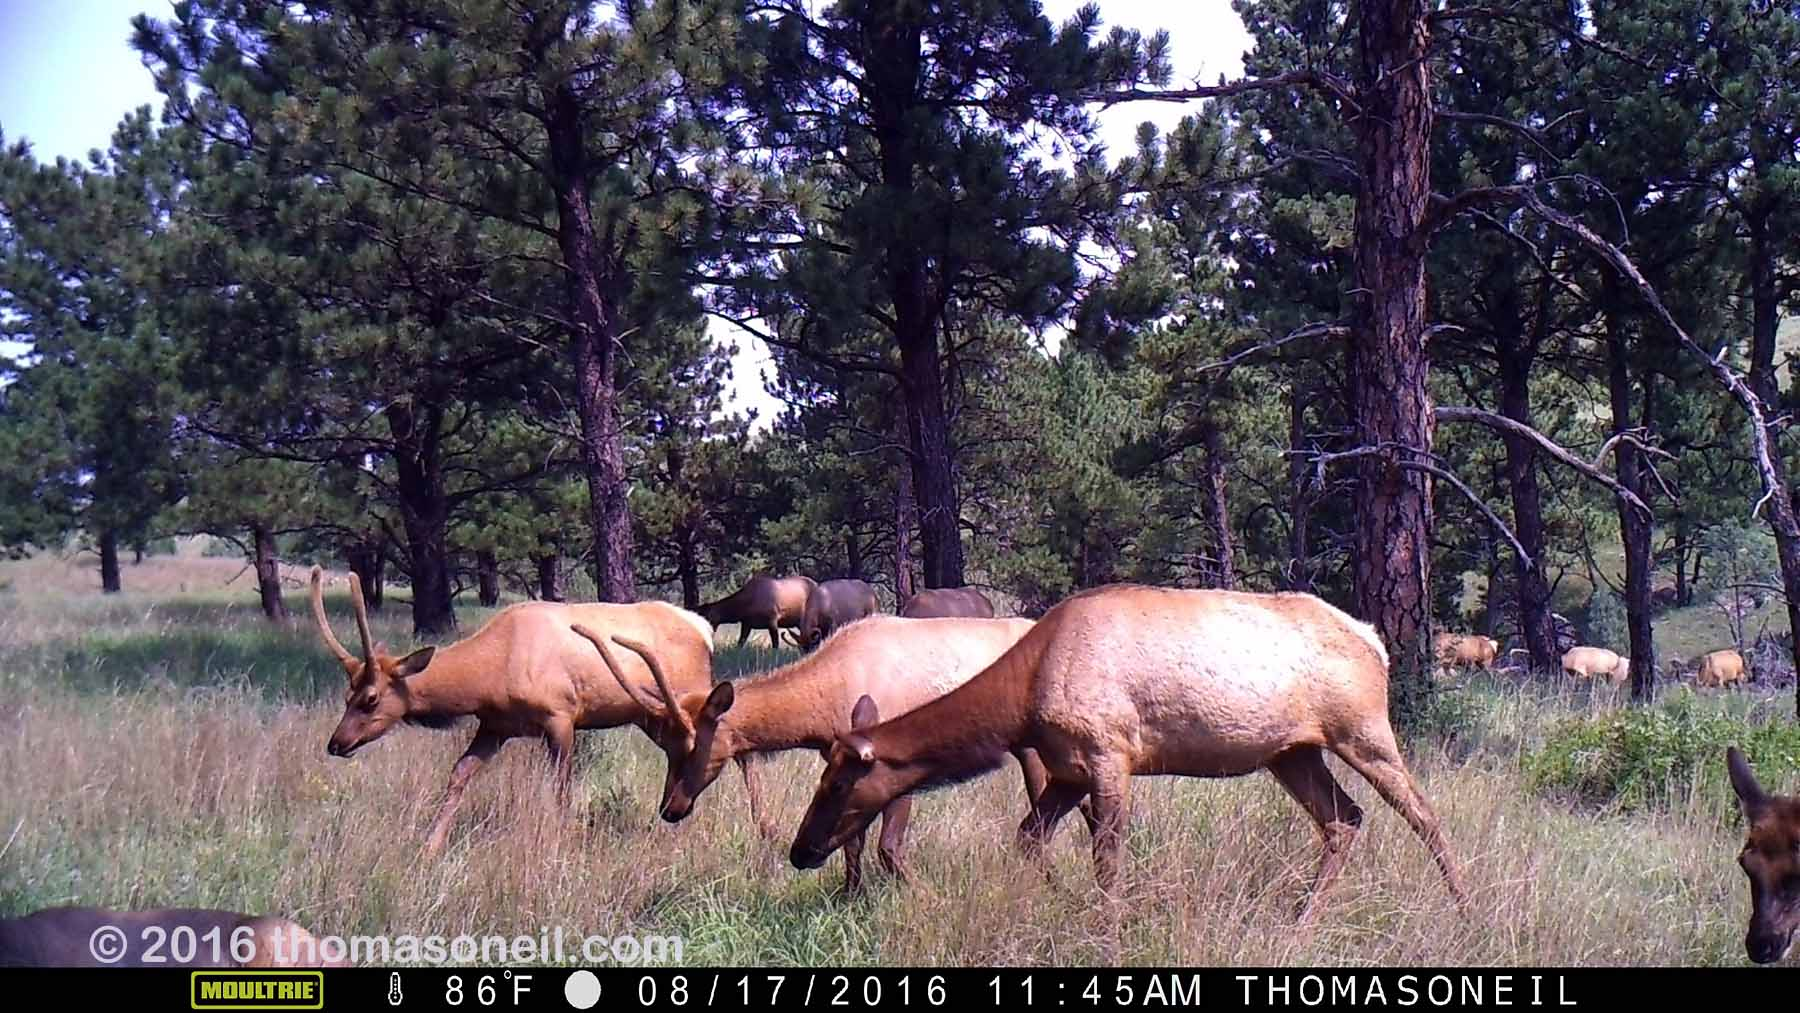 Elk on trailcam, Wind Cave National Park, Aug. 7, 2016.  Based on other images in this sequence, I estimate more than 20 elk passed through this area at this time.